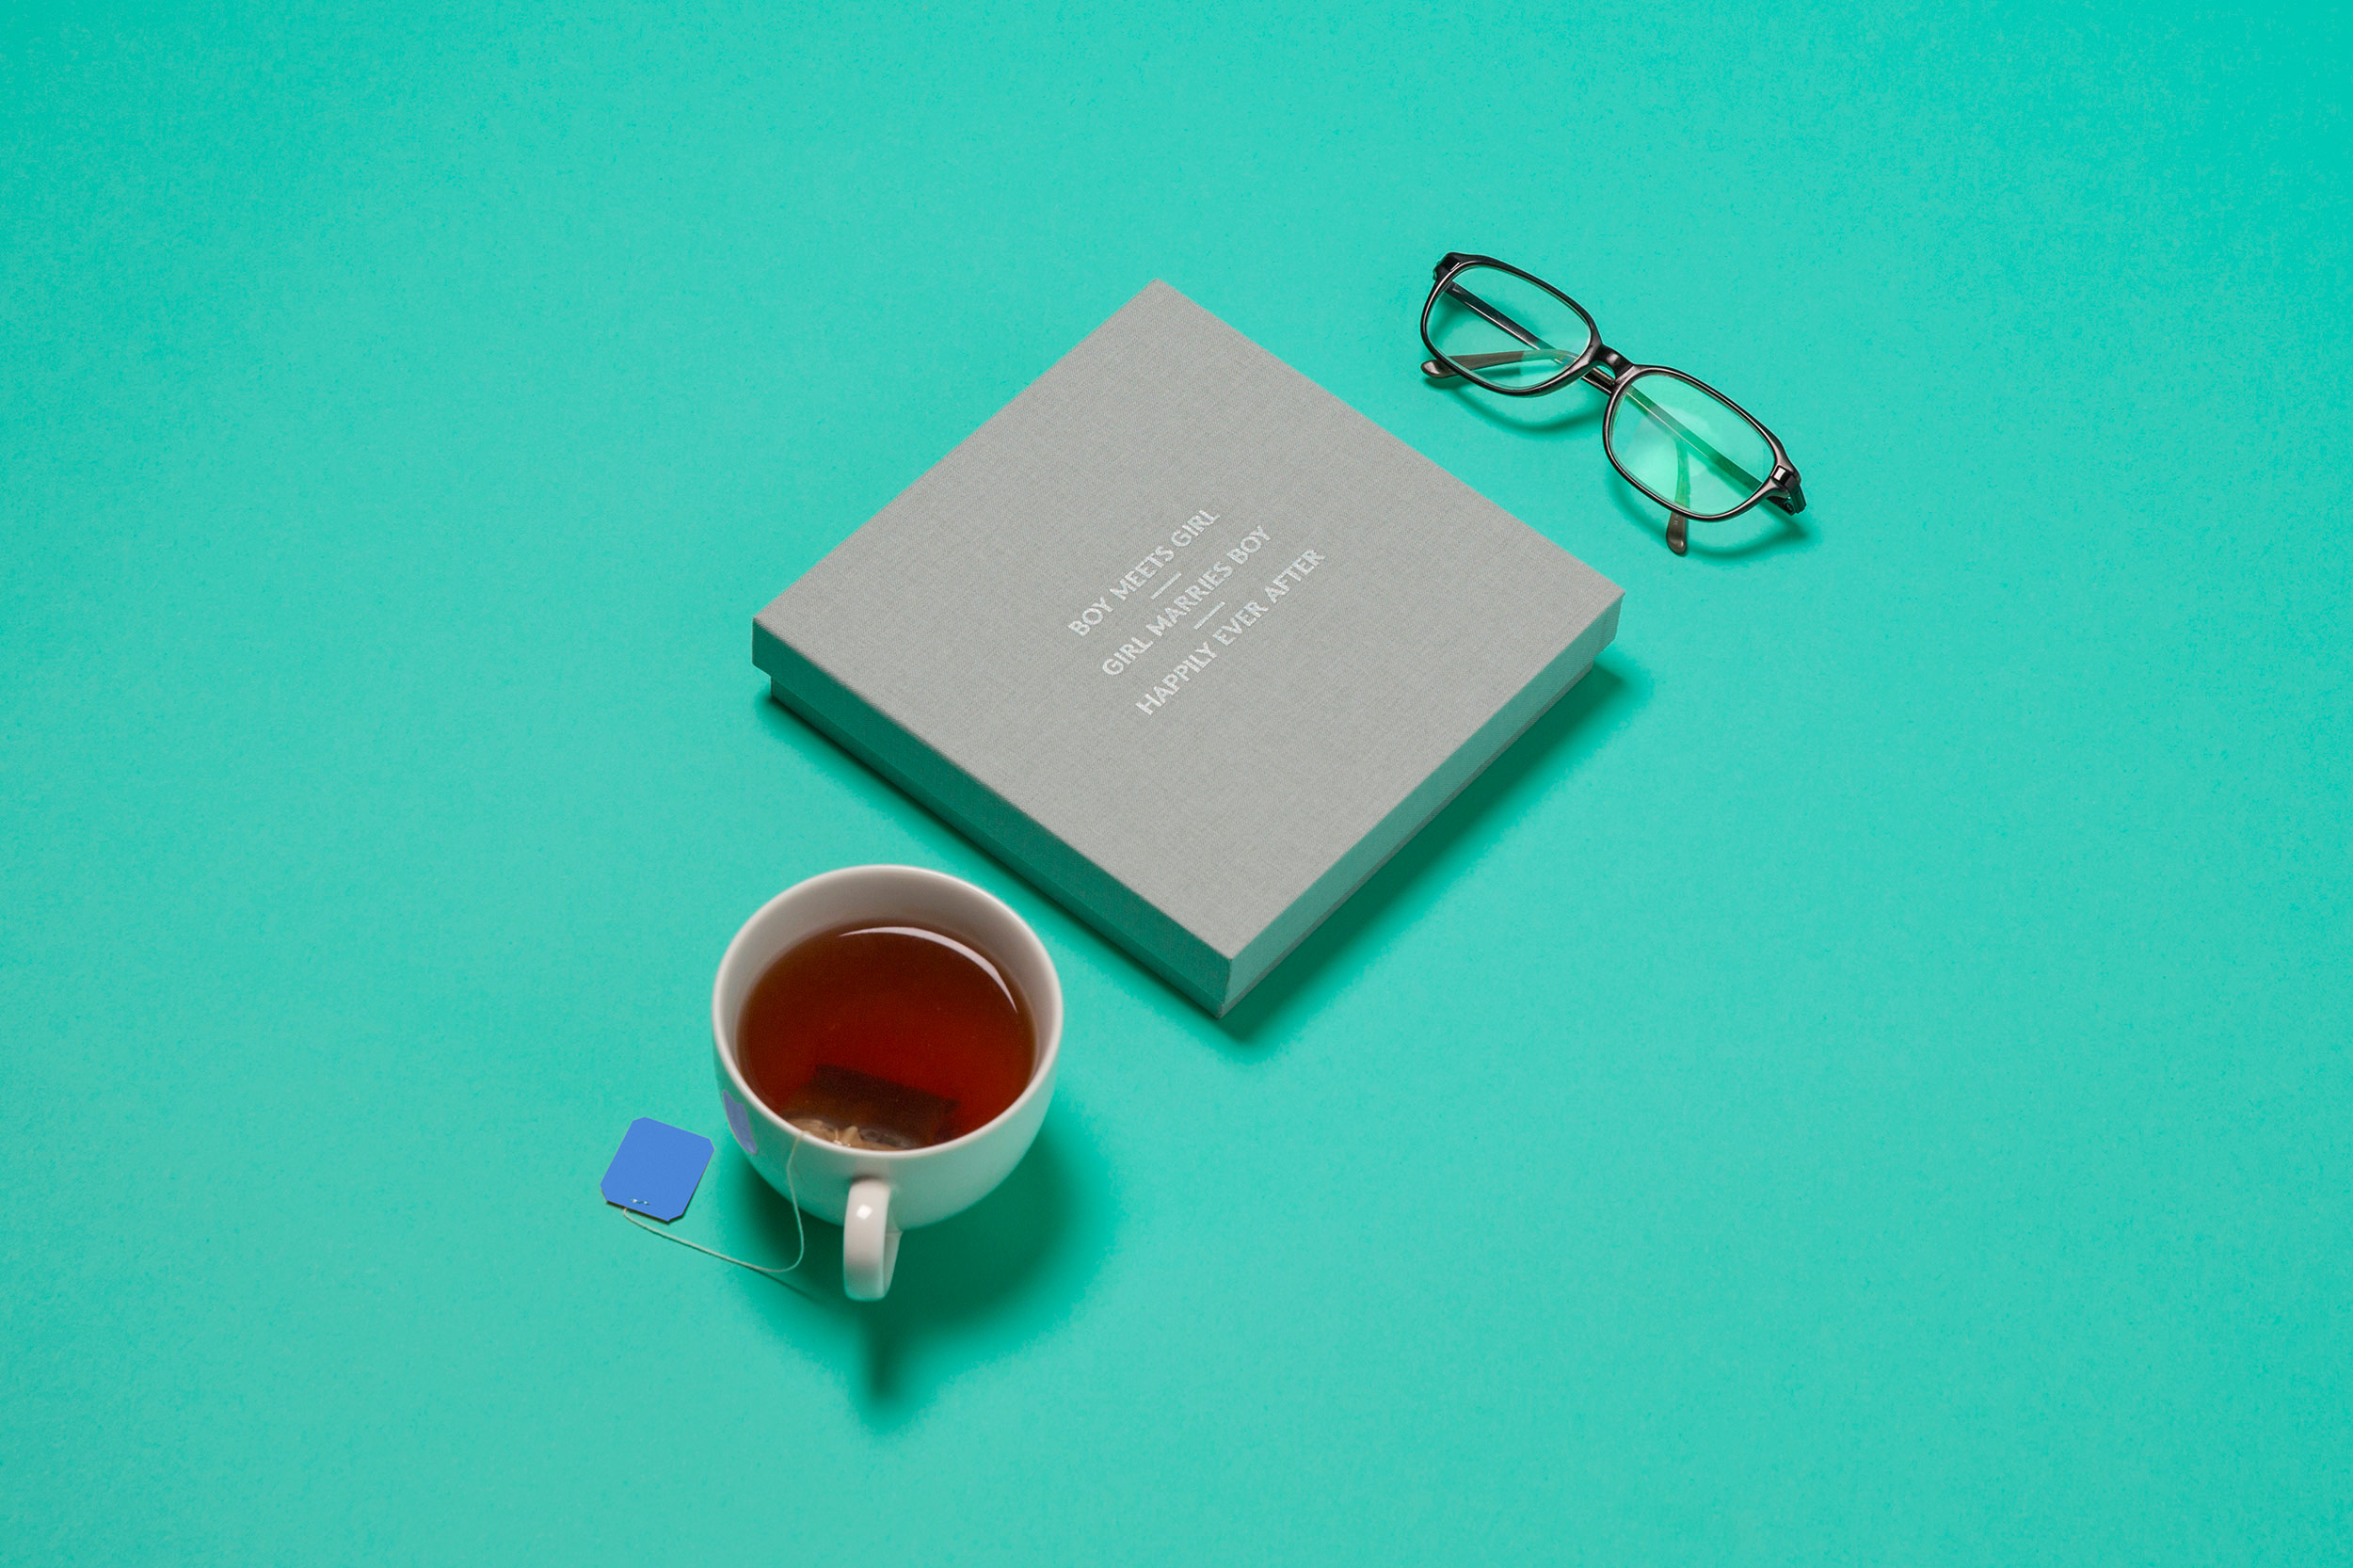 Visualaz_Box_Glasses_Tea.jpg